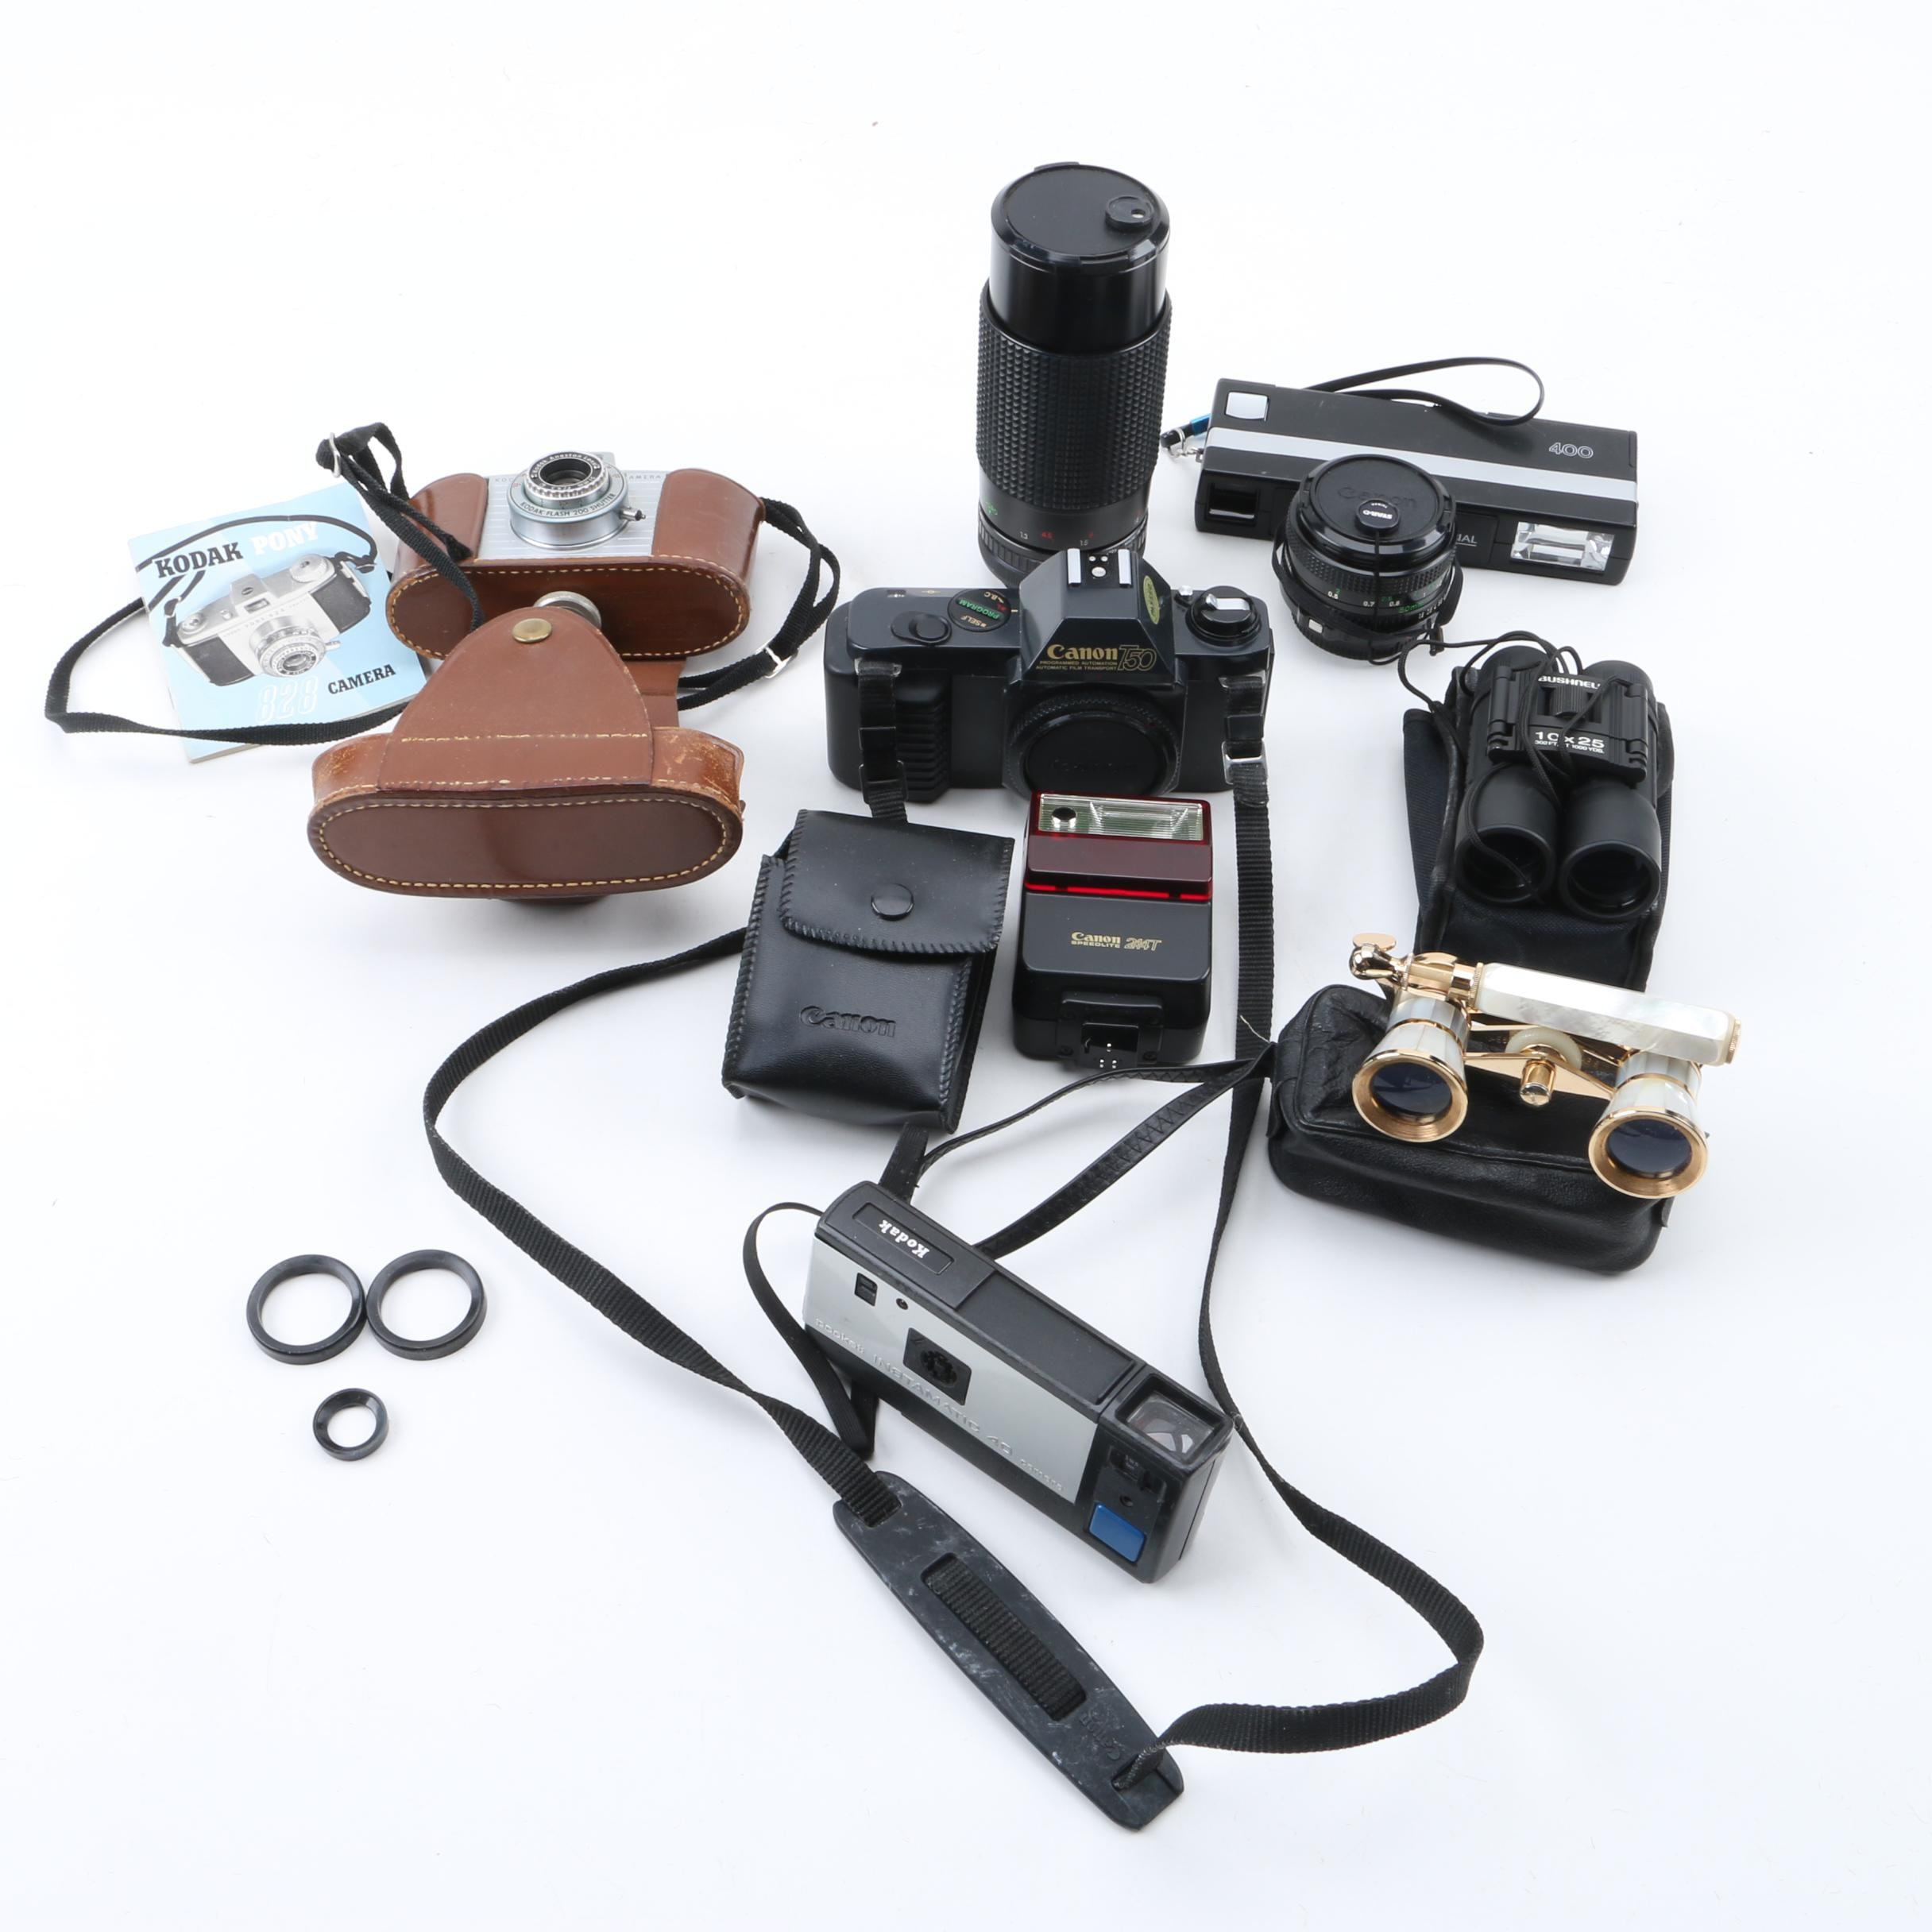 Vintage Kodak and Canon Cameras with Binoculars and Accessories